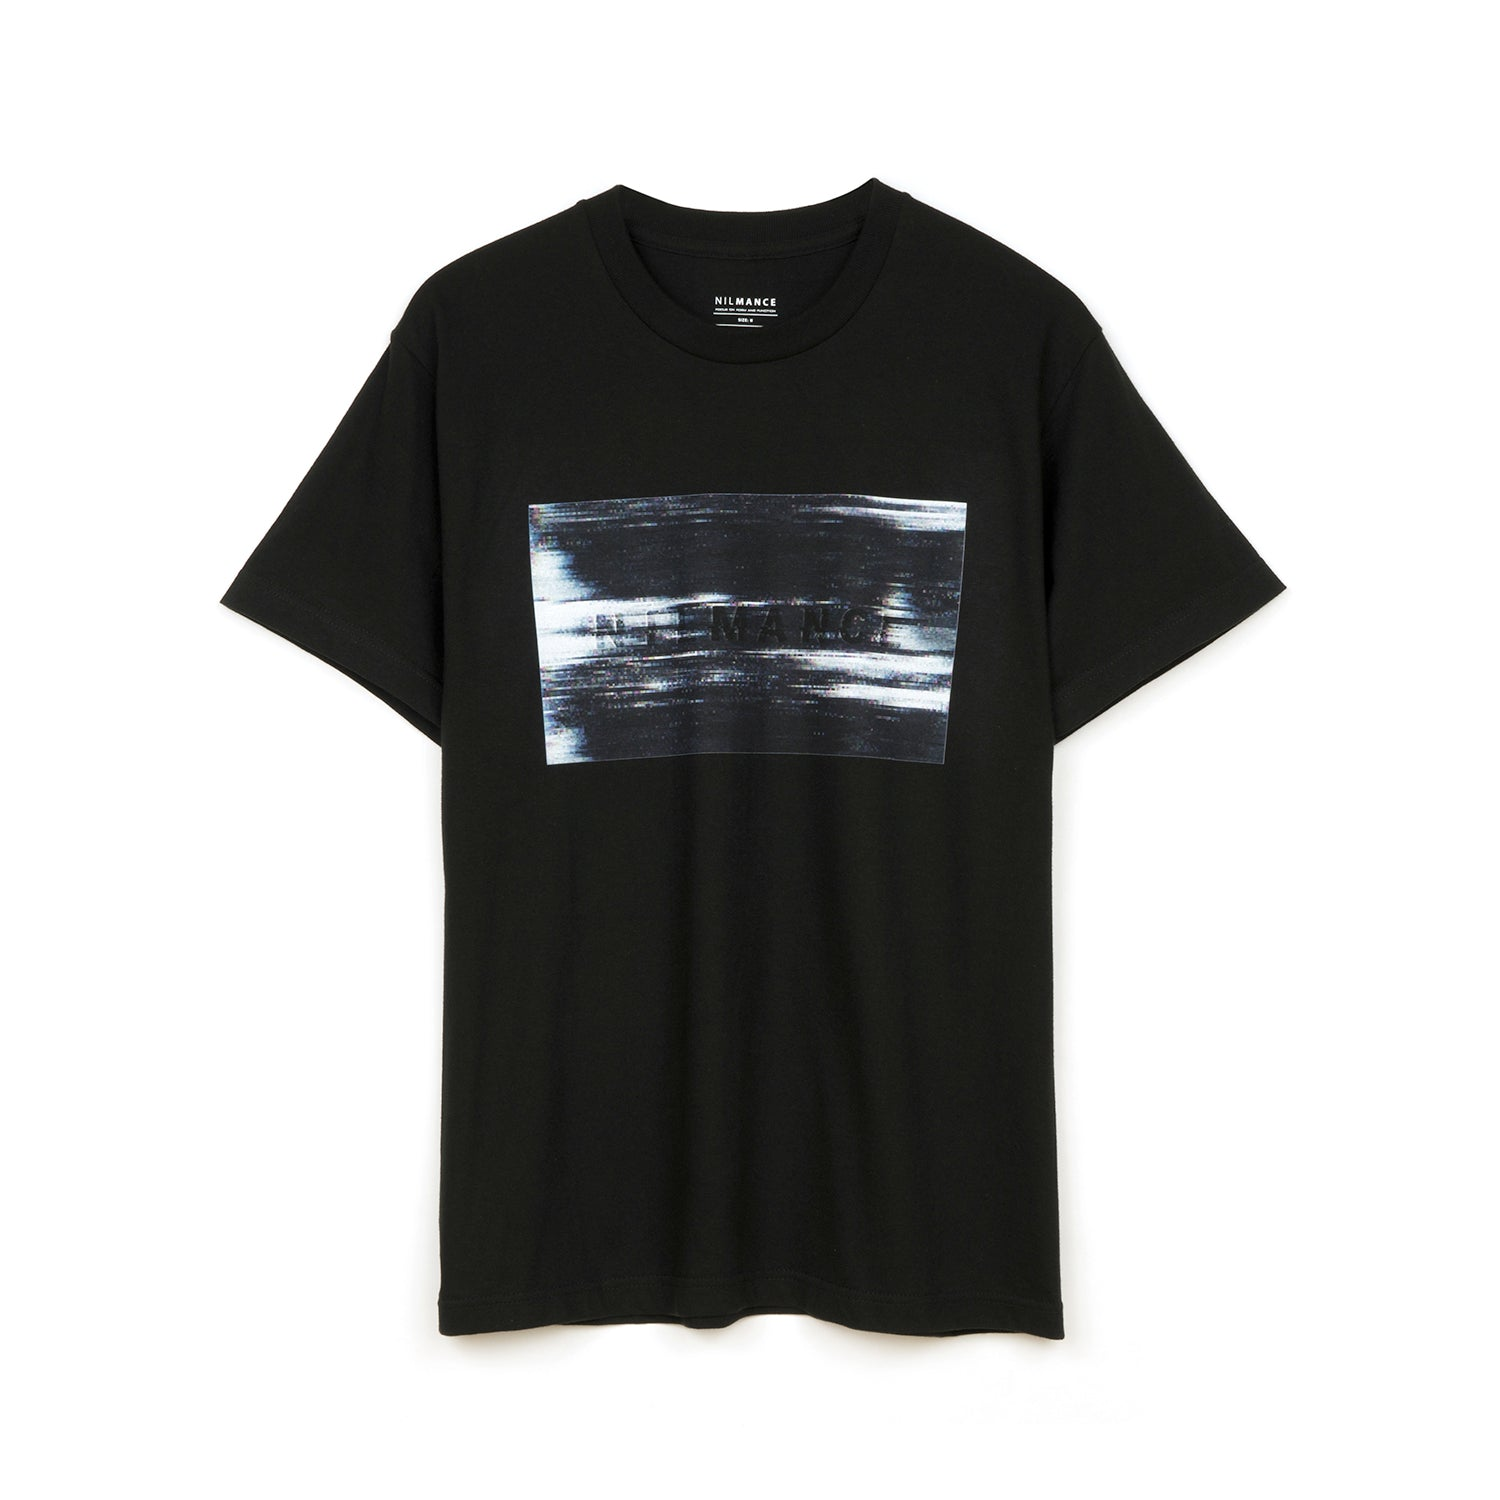 Nilmance Digital Print T-Shirt Black